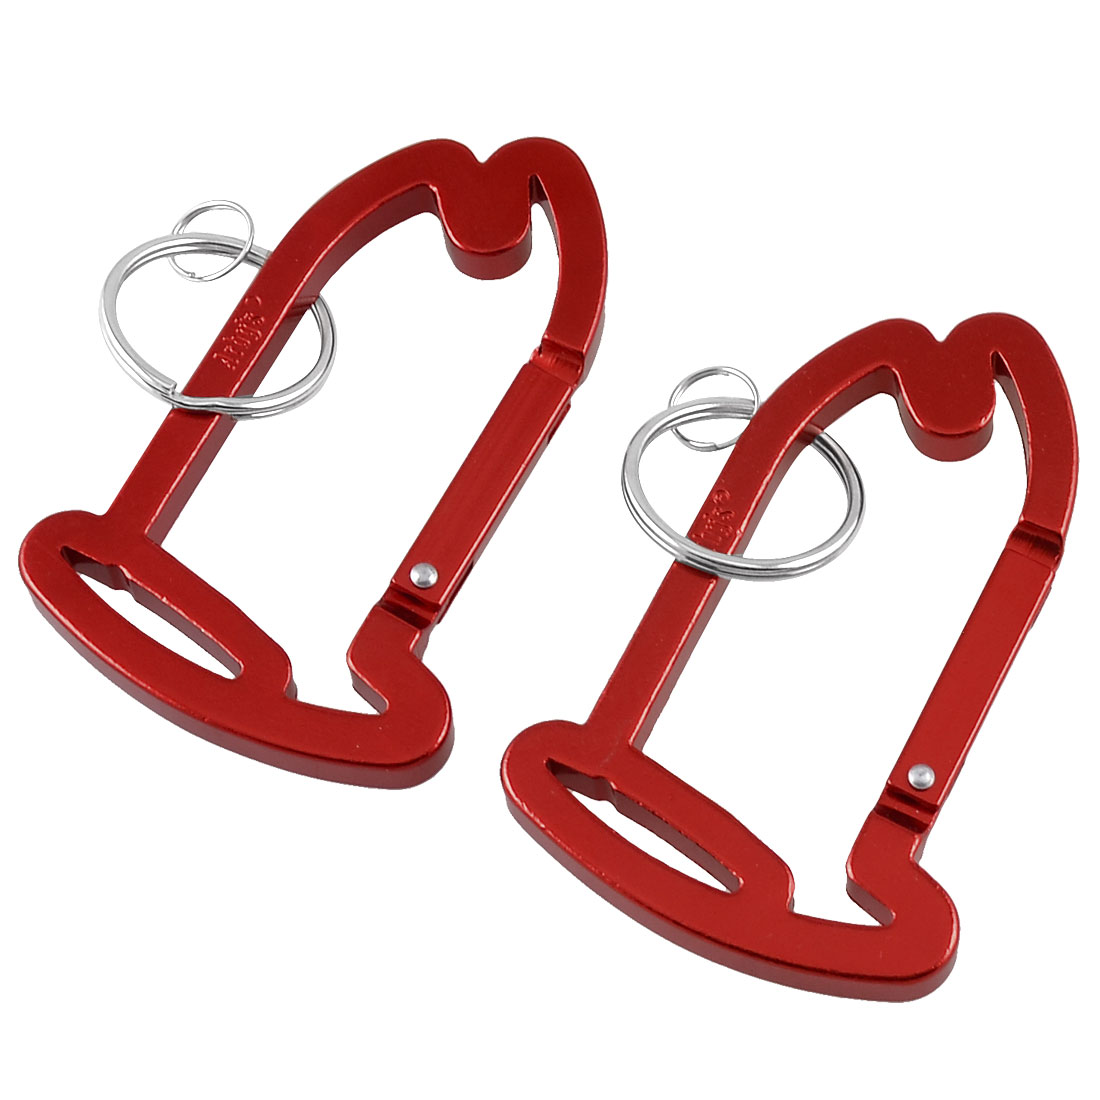 Outdoor Red House Shaped Locking Carabiner Hook Keychain 2 Pcs